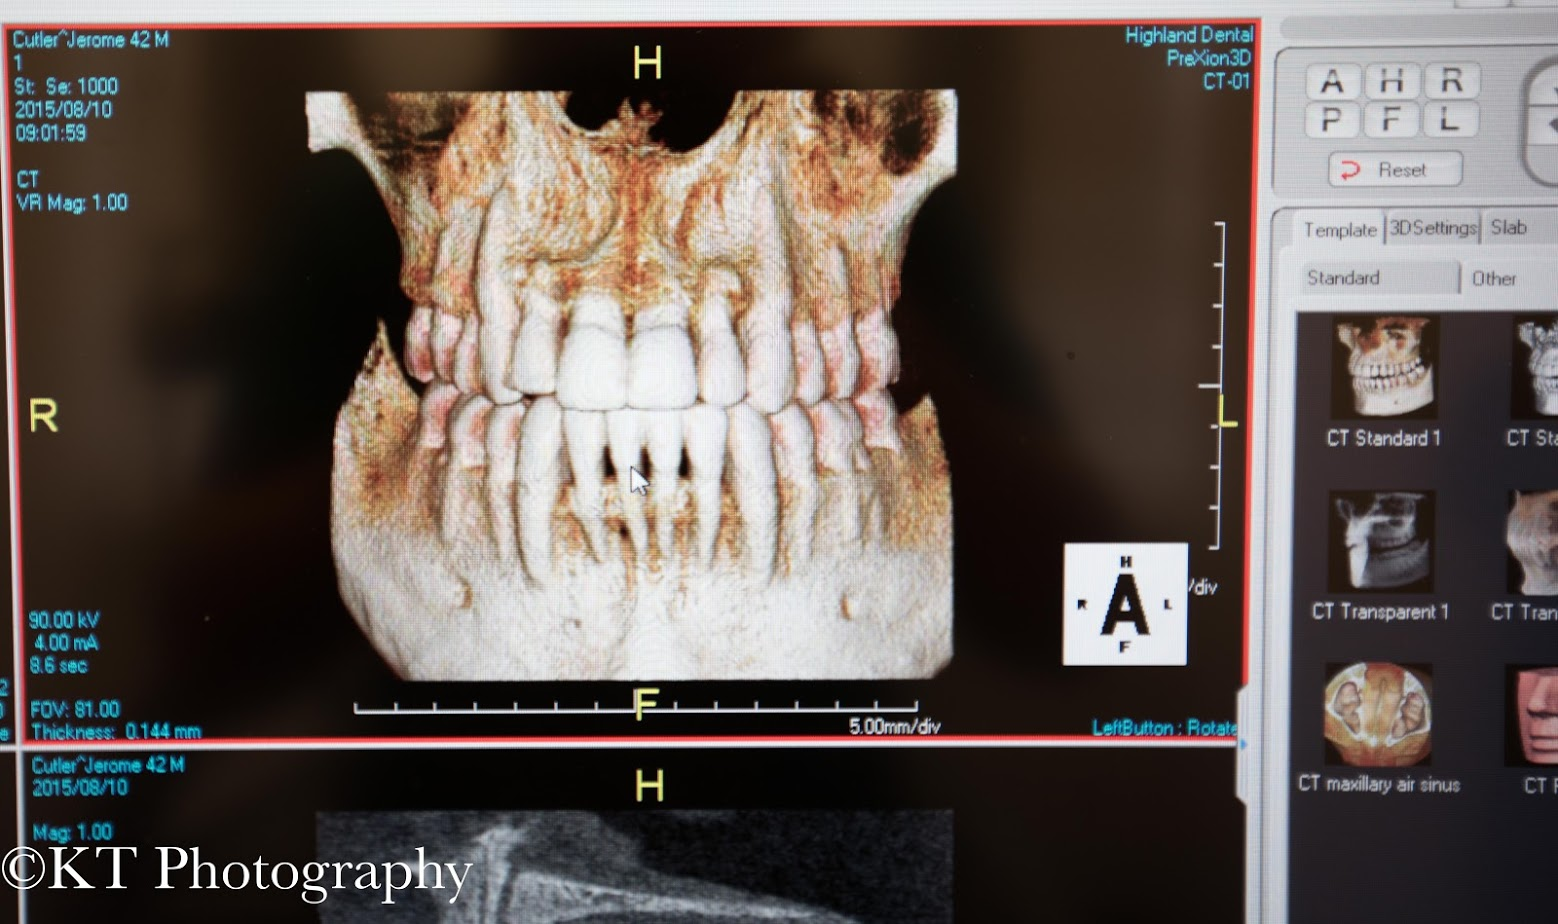 CBCT Scan Results